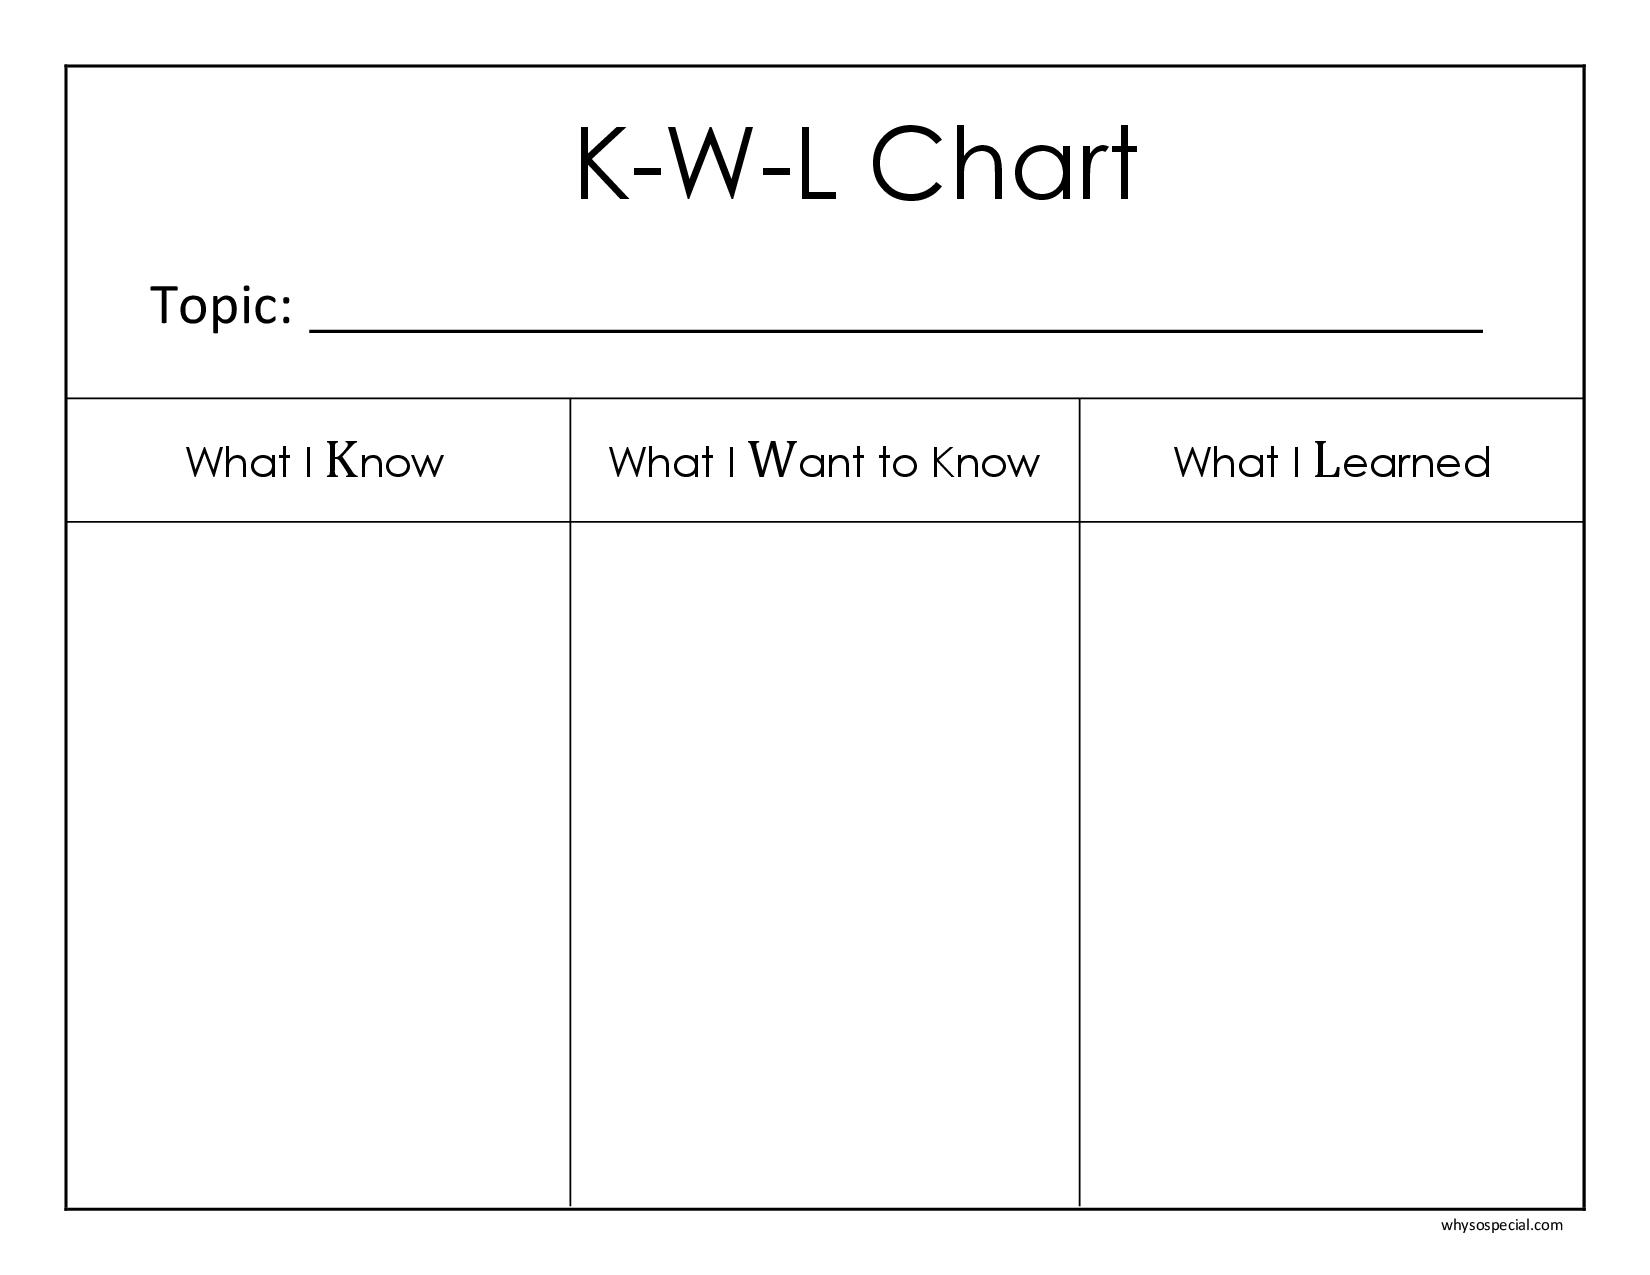 image relating to Free Printable Kwl Chart titled Totally free Printable Kwl Chart cellular discoveries